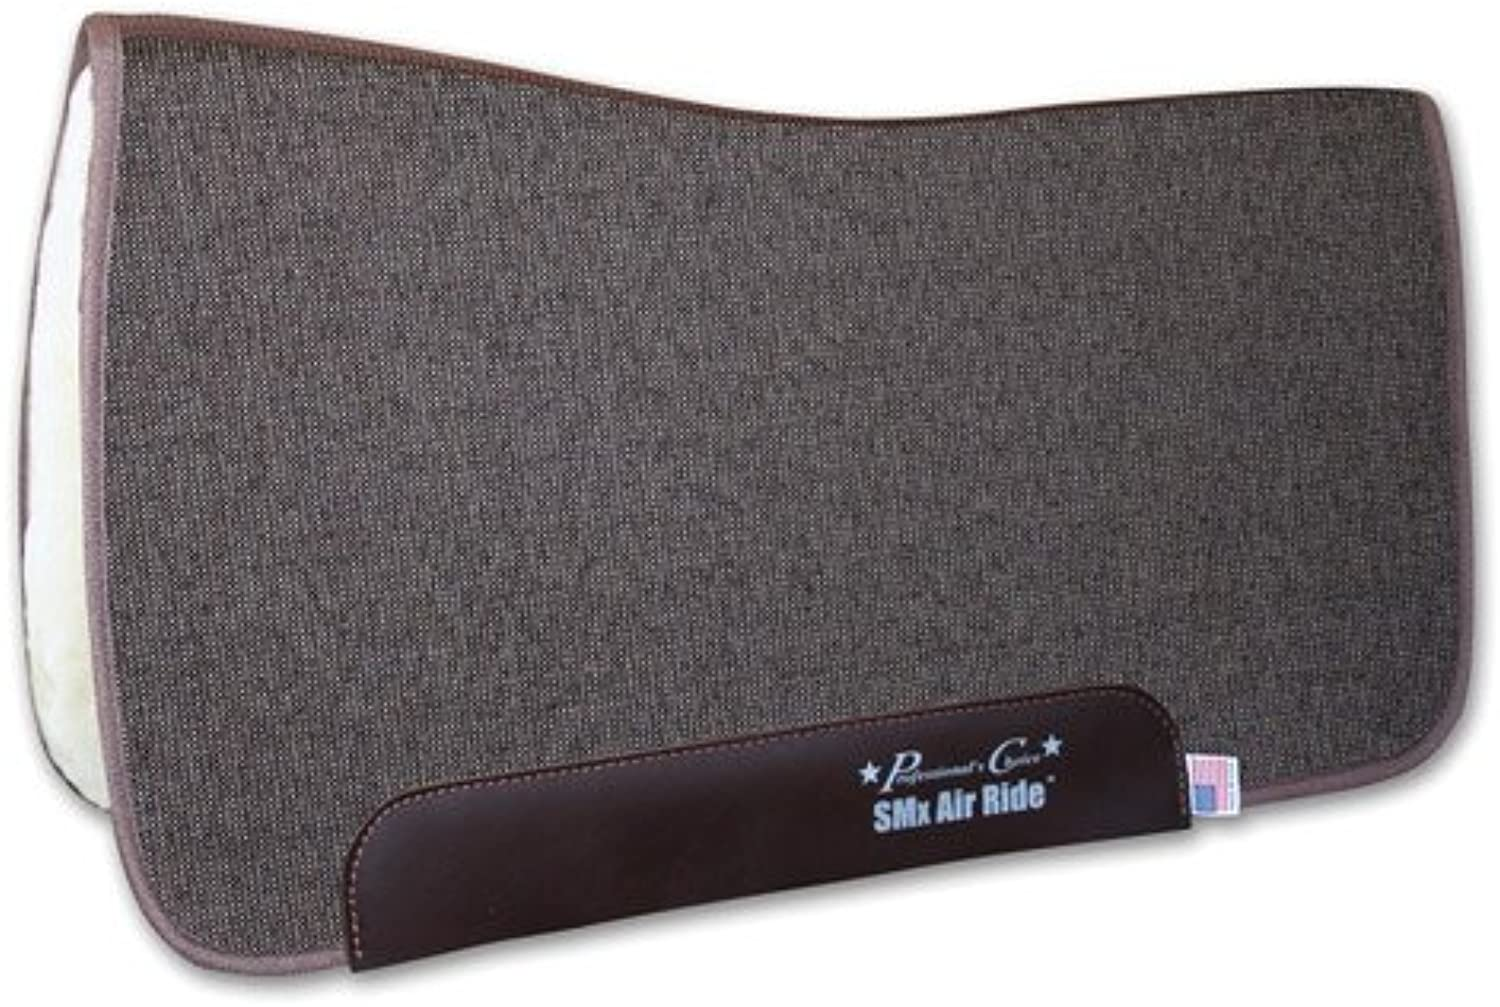 Professionals Choice 30X32 Equine Smx Air-Ride All Around Saddle Pad